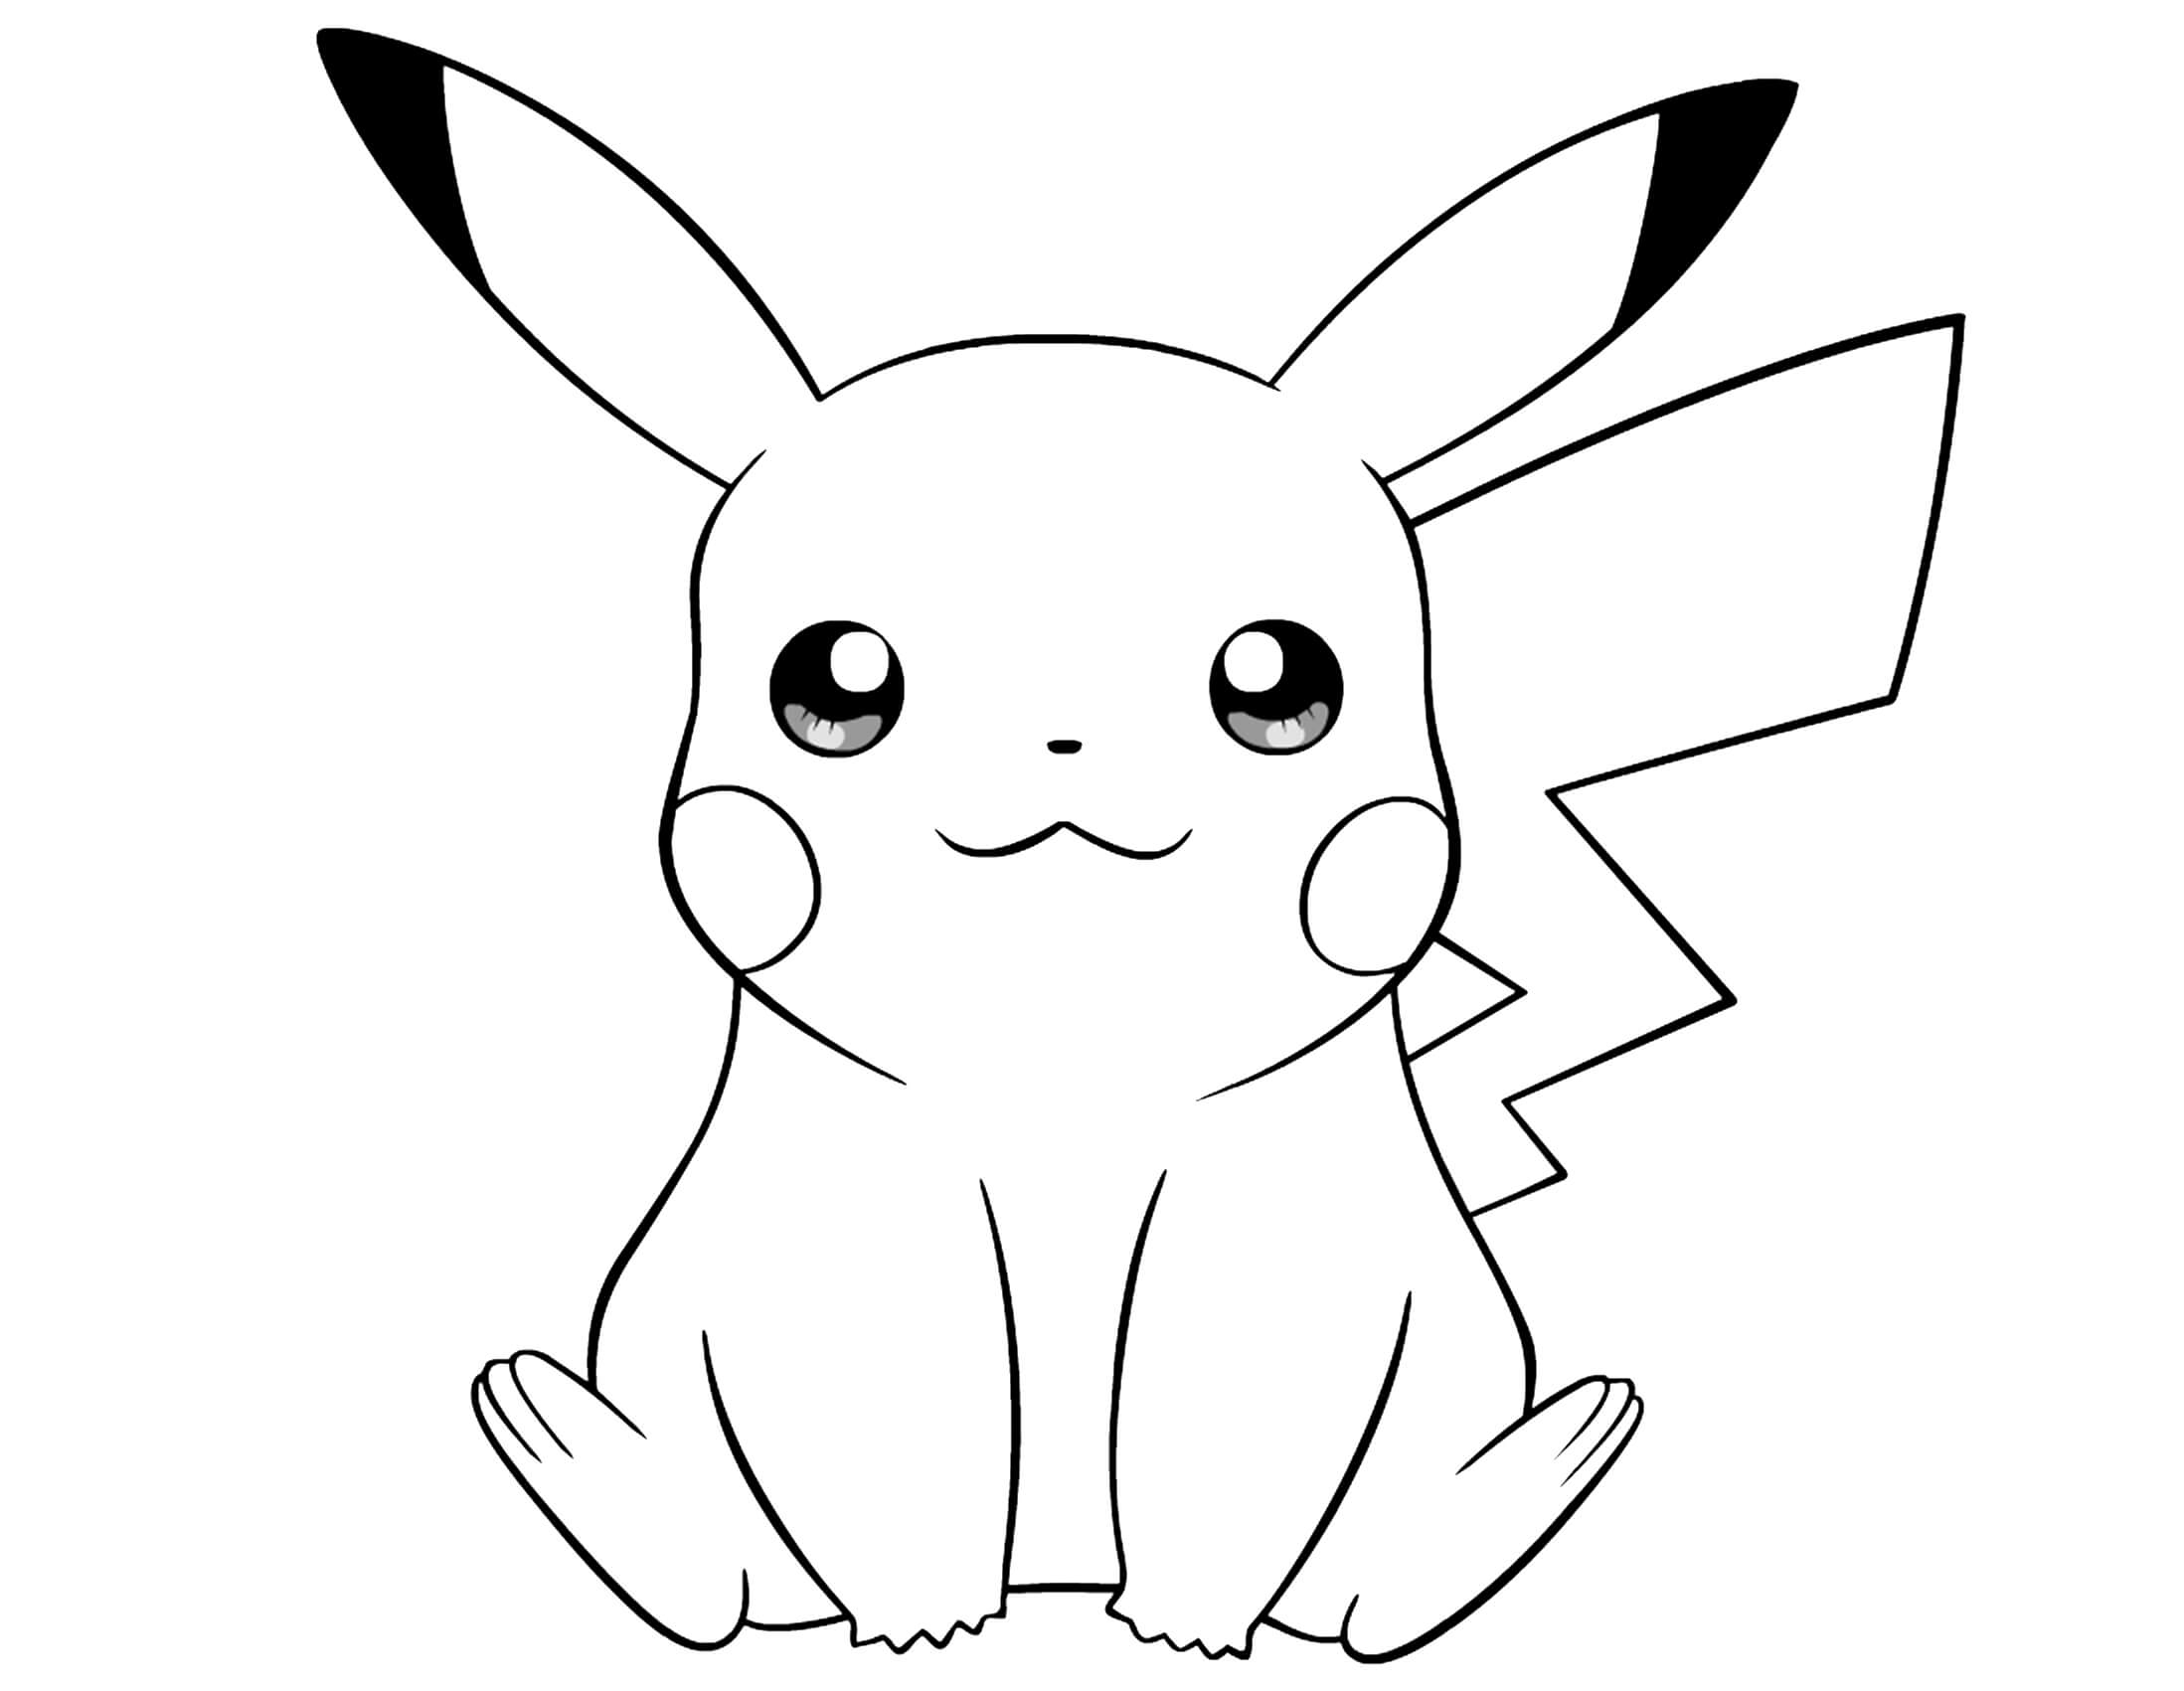 Pokemon Coloring Pages Pikachu - Pokemon Coloring Pages